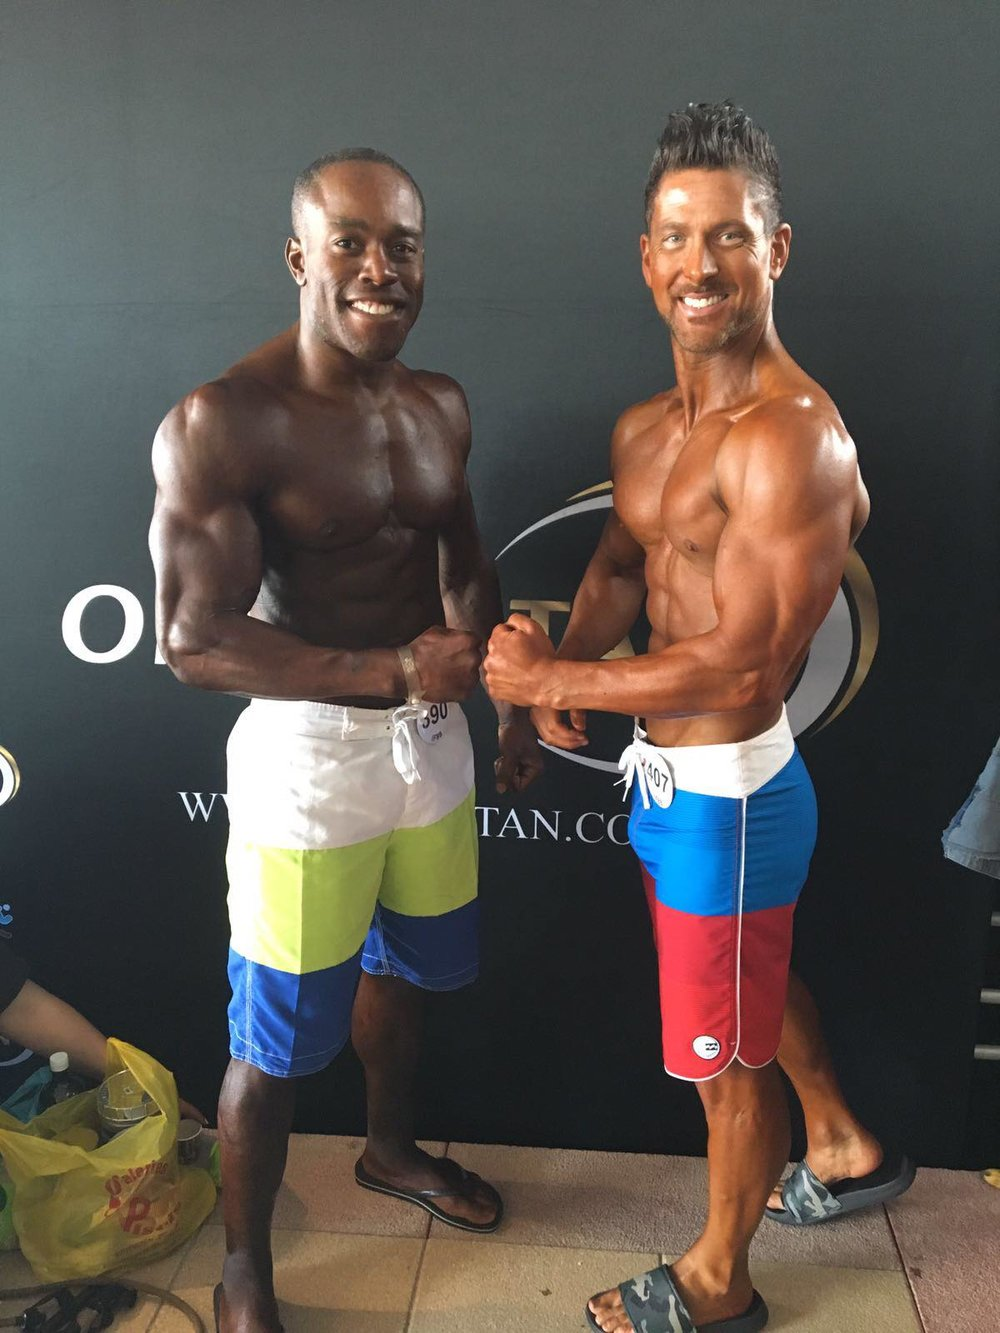 Ricky Beckford (right) won silver in masters men's physique. Fellow UK athlete Dave Walters (left) was sixth in his age group.